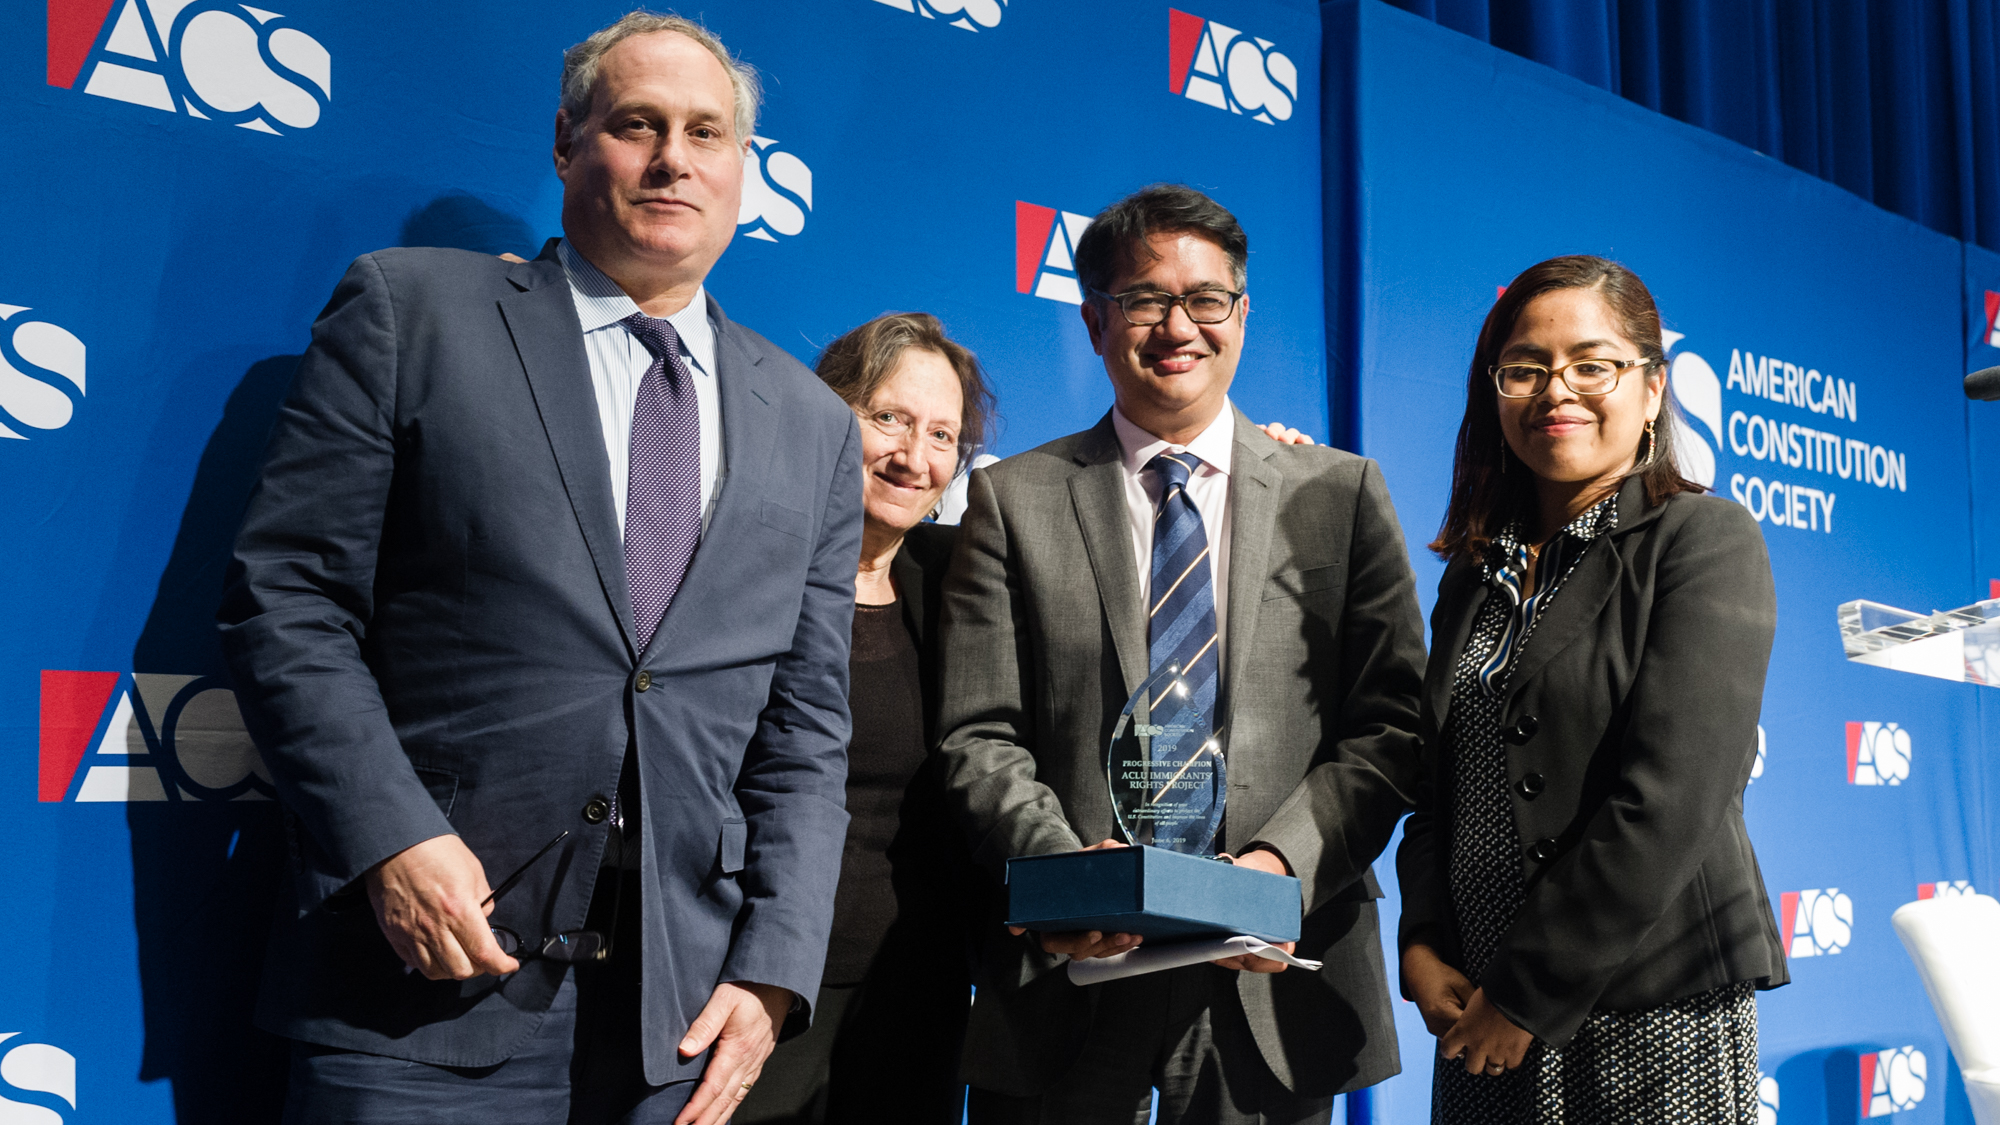 ACLU's Immigrant Rights Project receives the 2019 ACS Progressive Champion Award